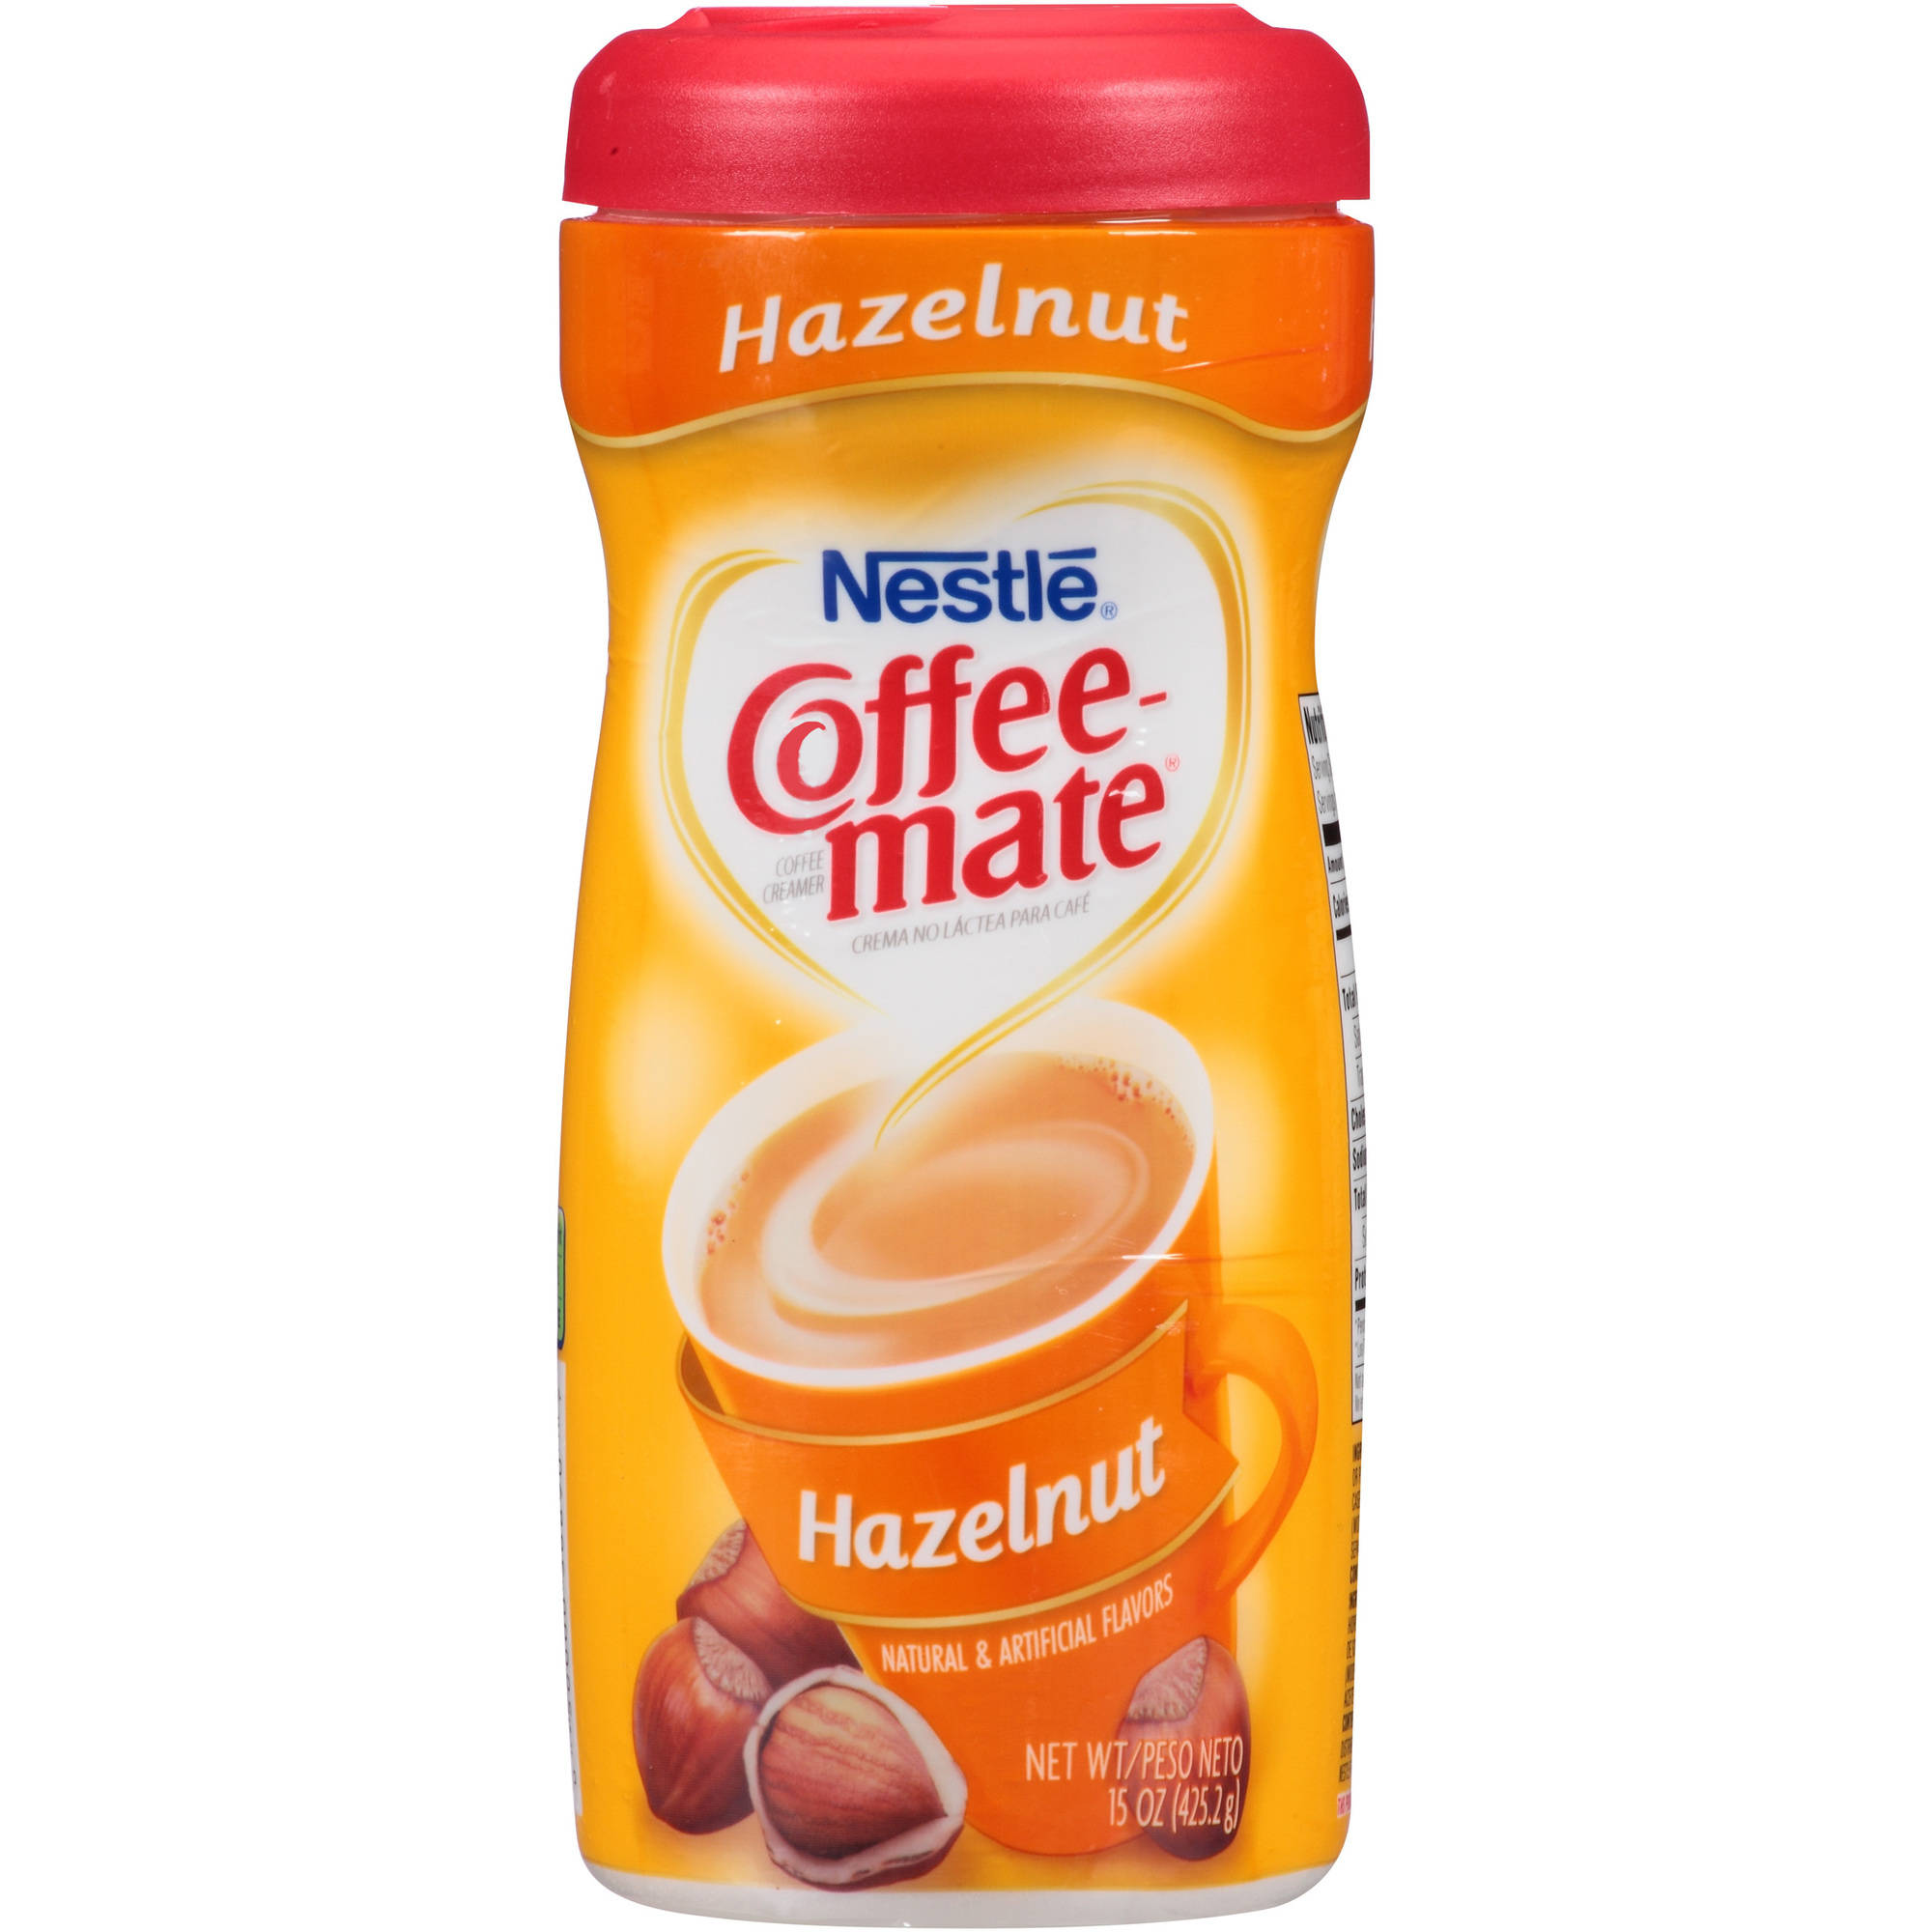 Nestlé Coffee-mate Hazelnut Coffee Creamer 15 oz. Plastic Container